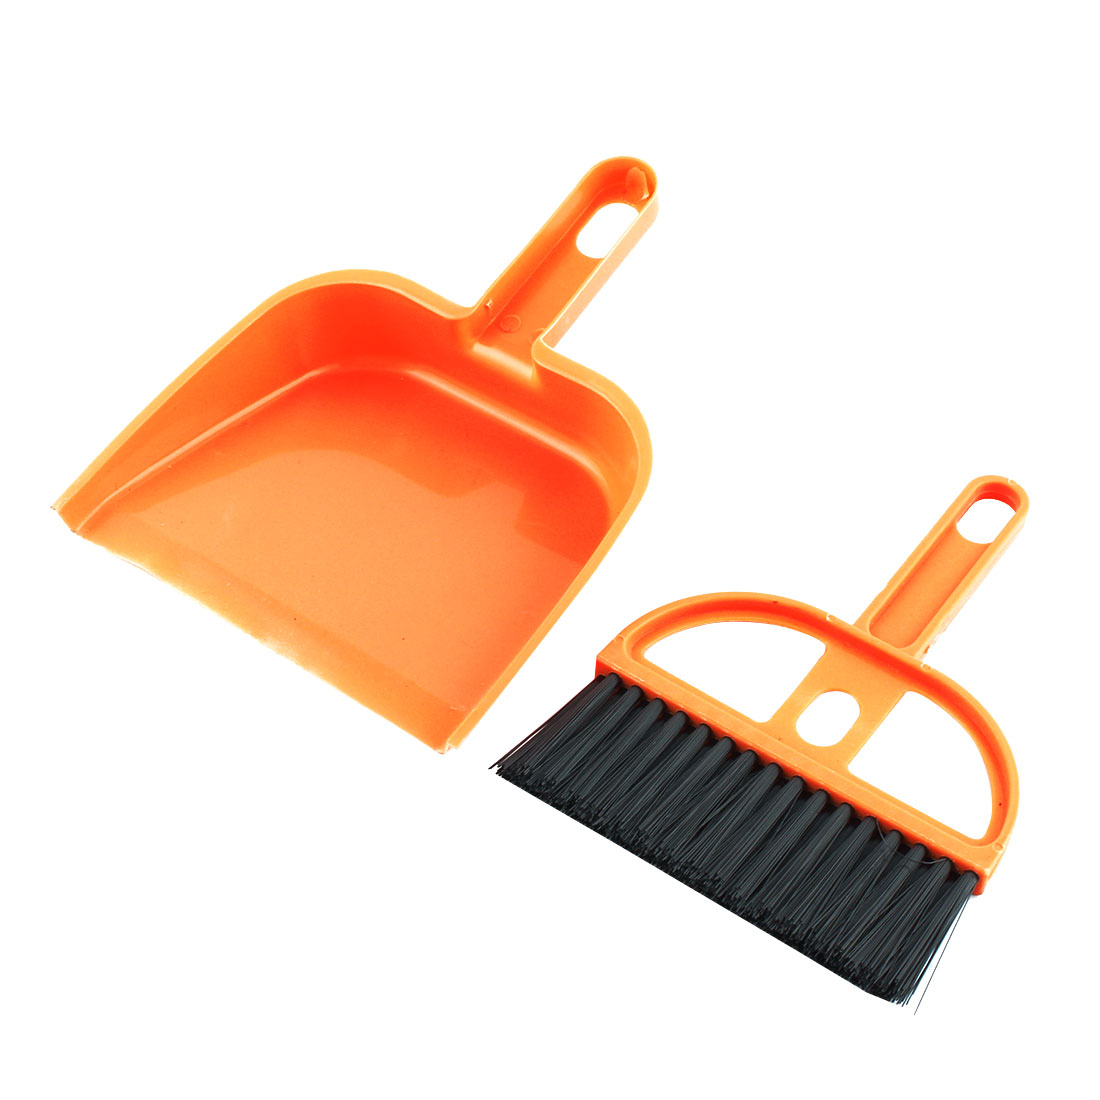 Home Plastic Computer Table Corner Cleaning Whisk Broom Dustpan Set Tool Orange